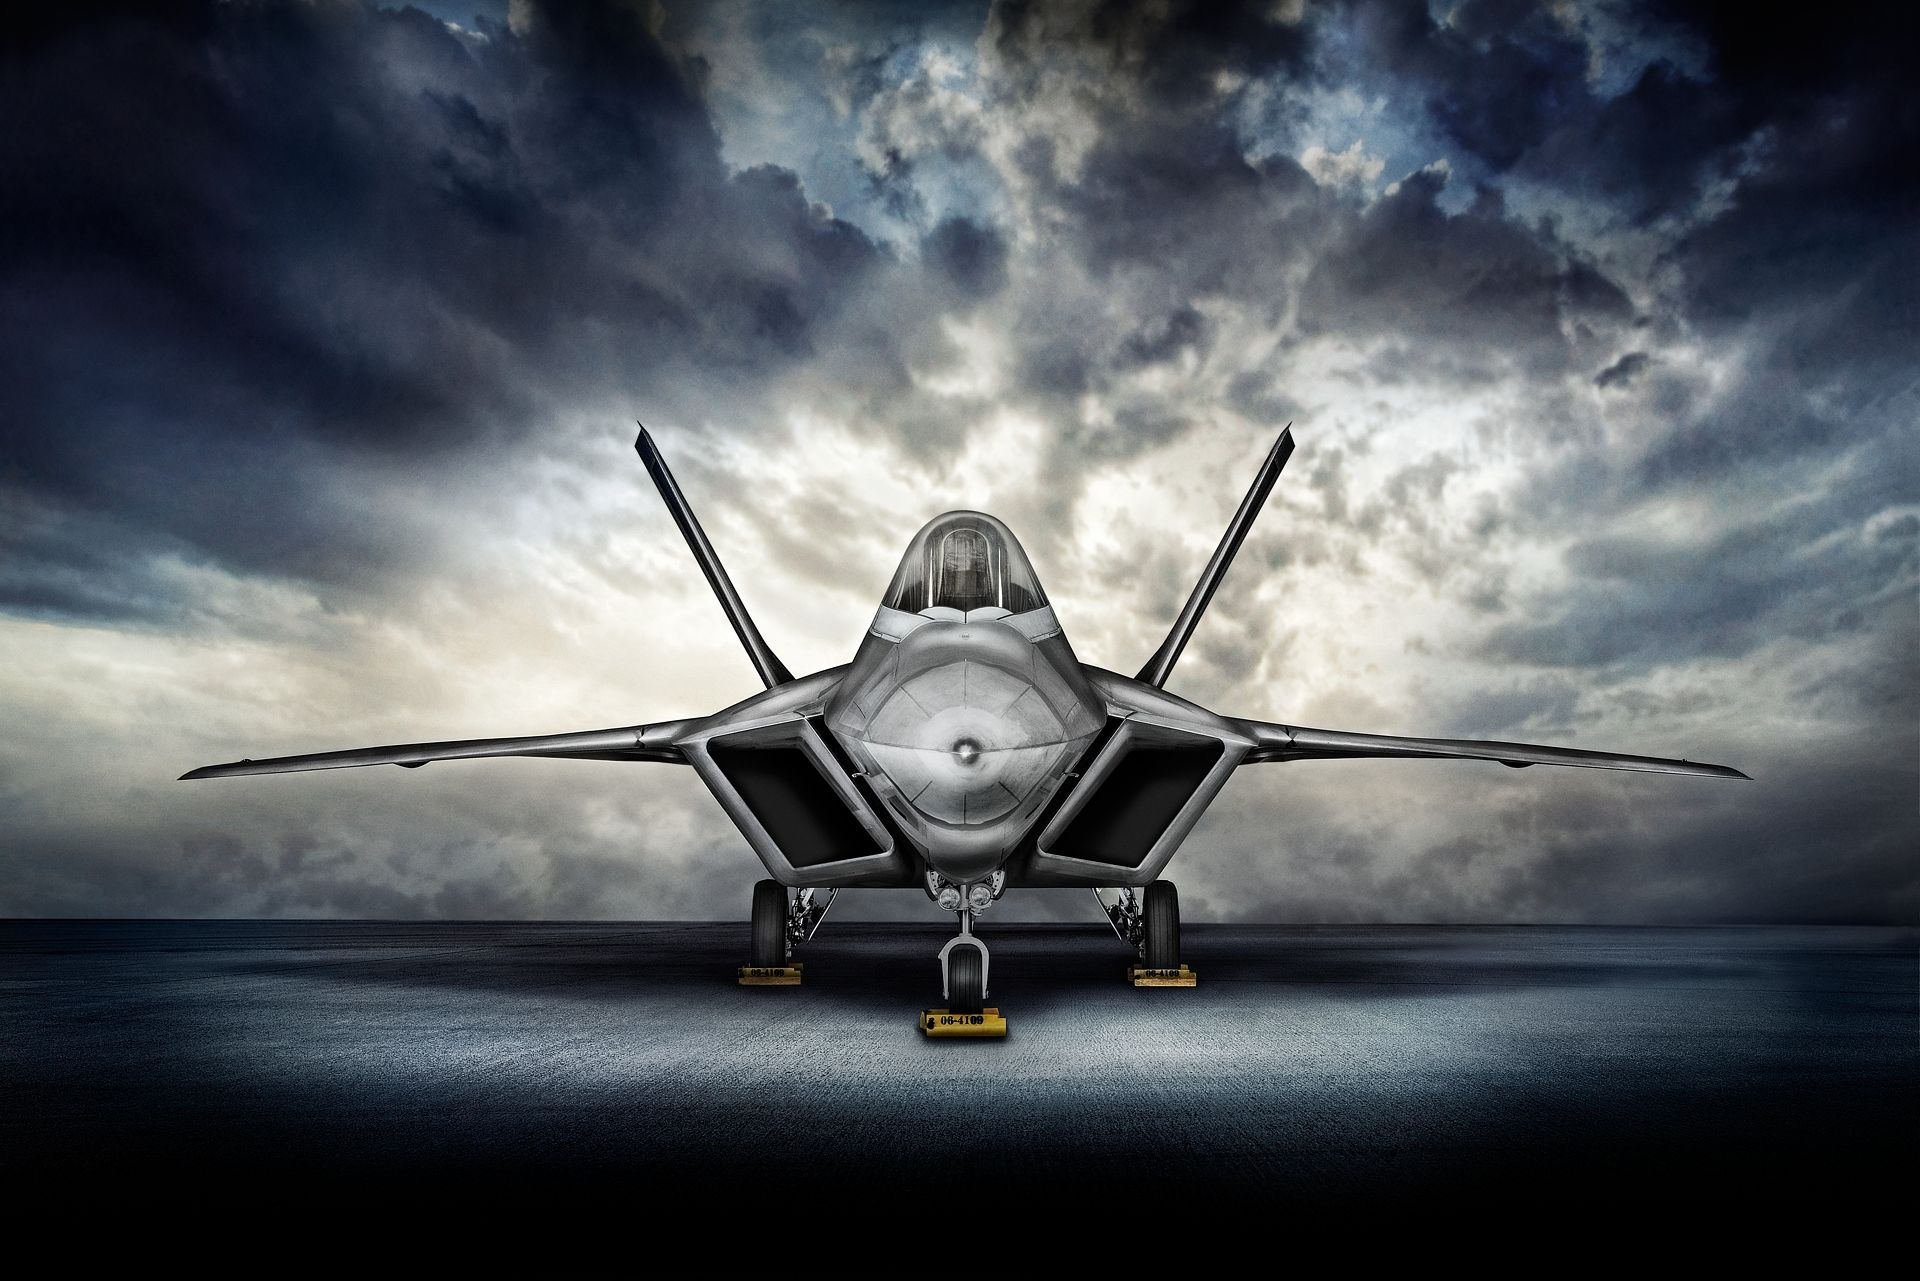 These Incredible Photos Of The F 22 Raptor Will Leave You Stunned Fighter Jets Best Fighter Jet Fighter